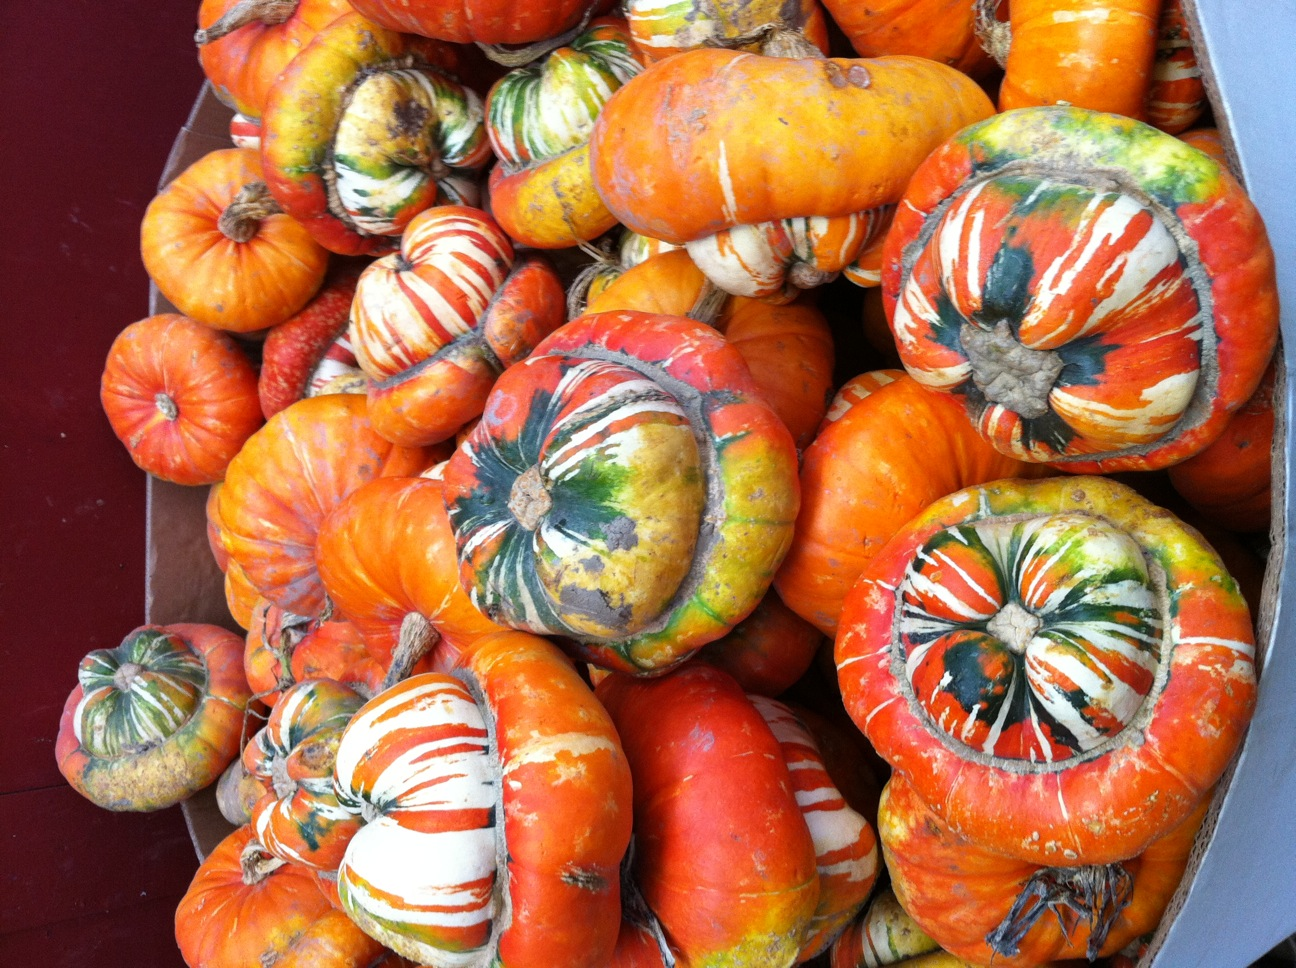 I think these turban squash grew in a mushroom patch, if you know what I mean